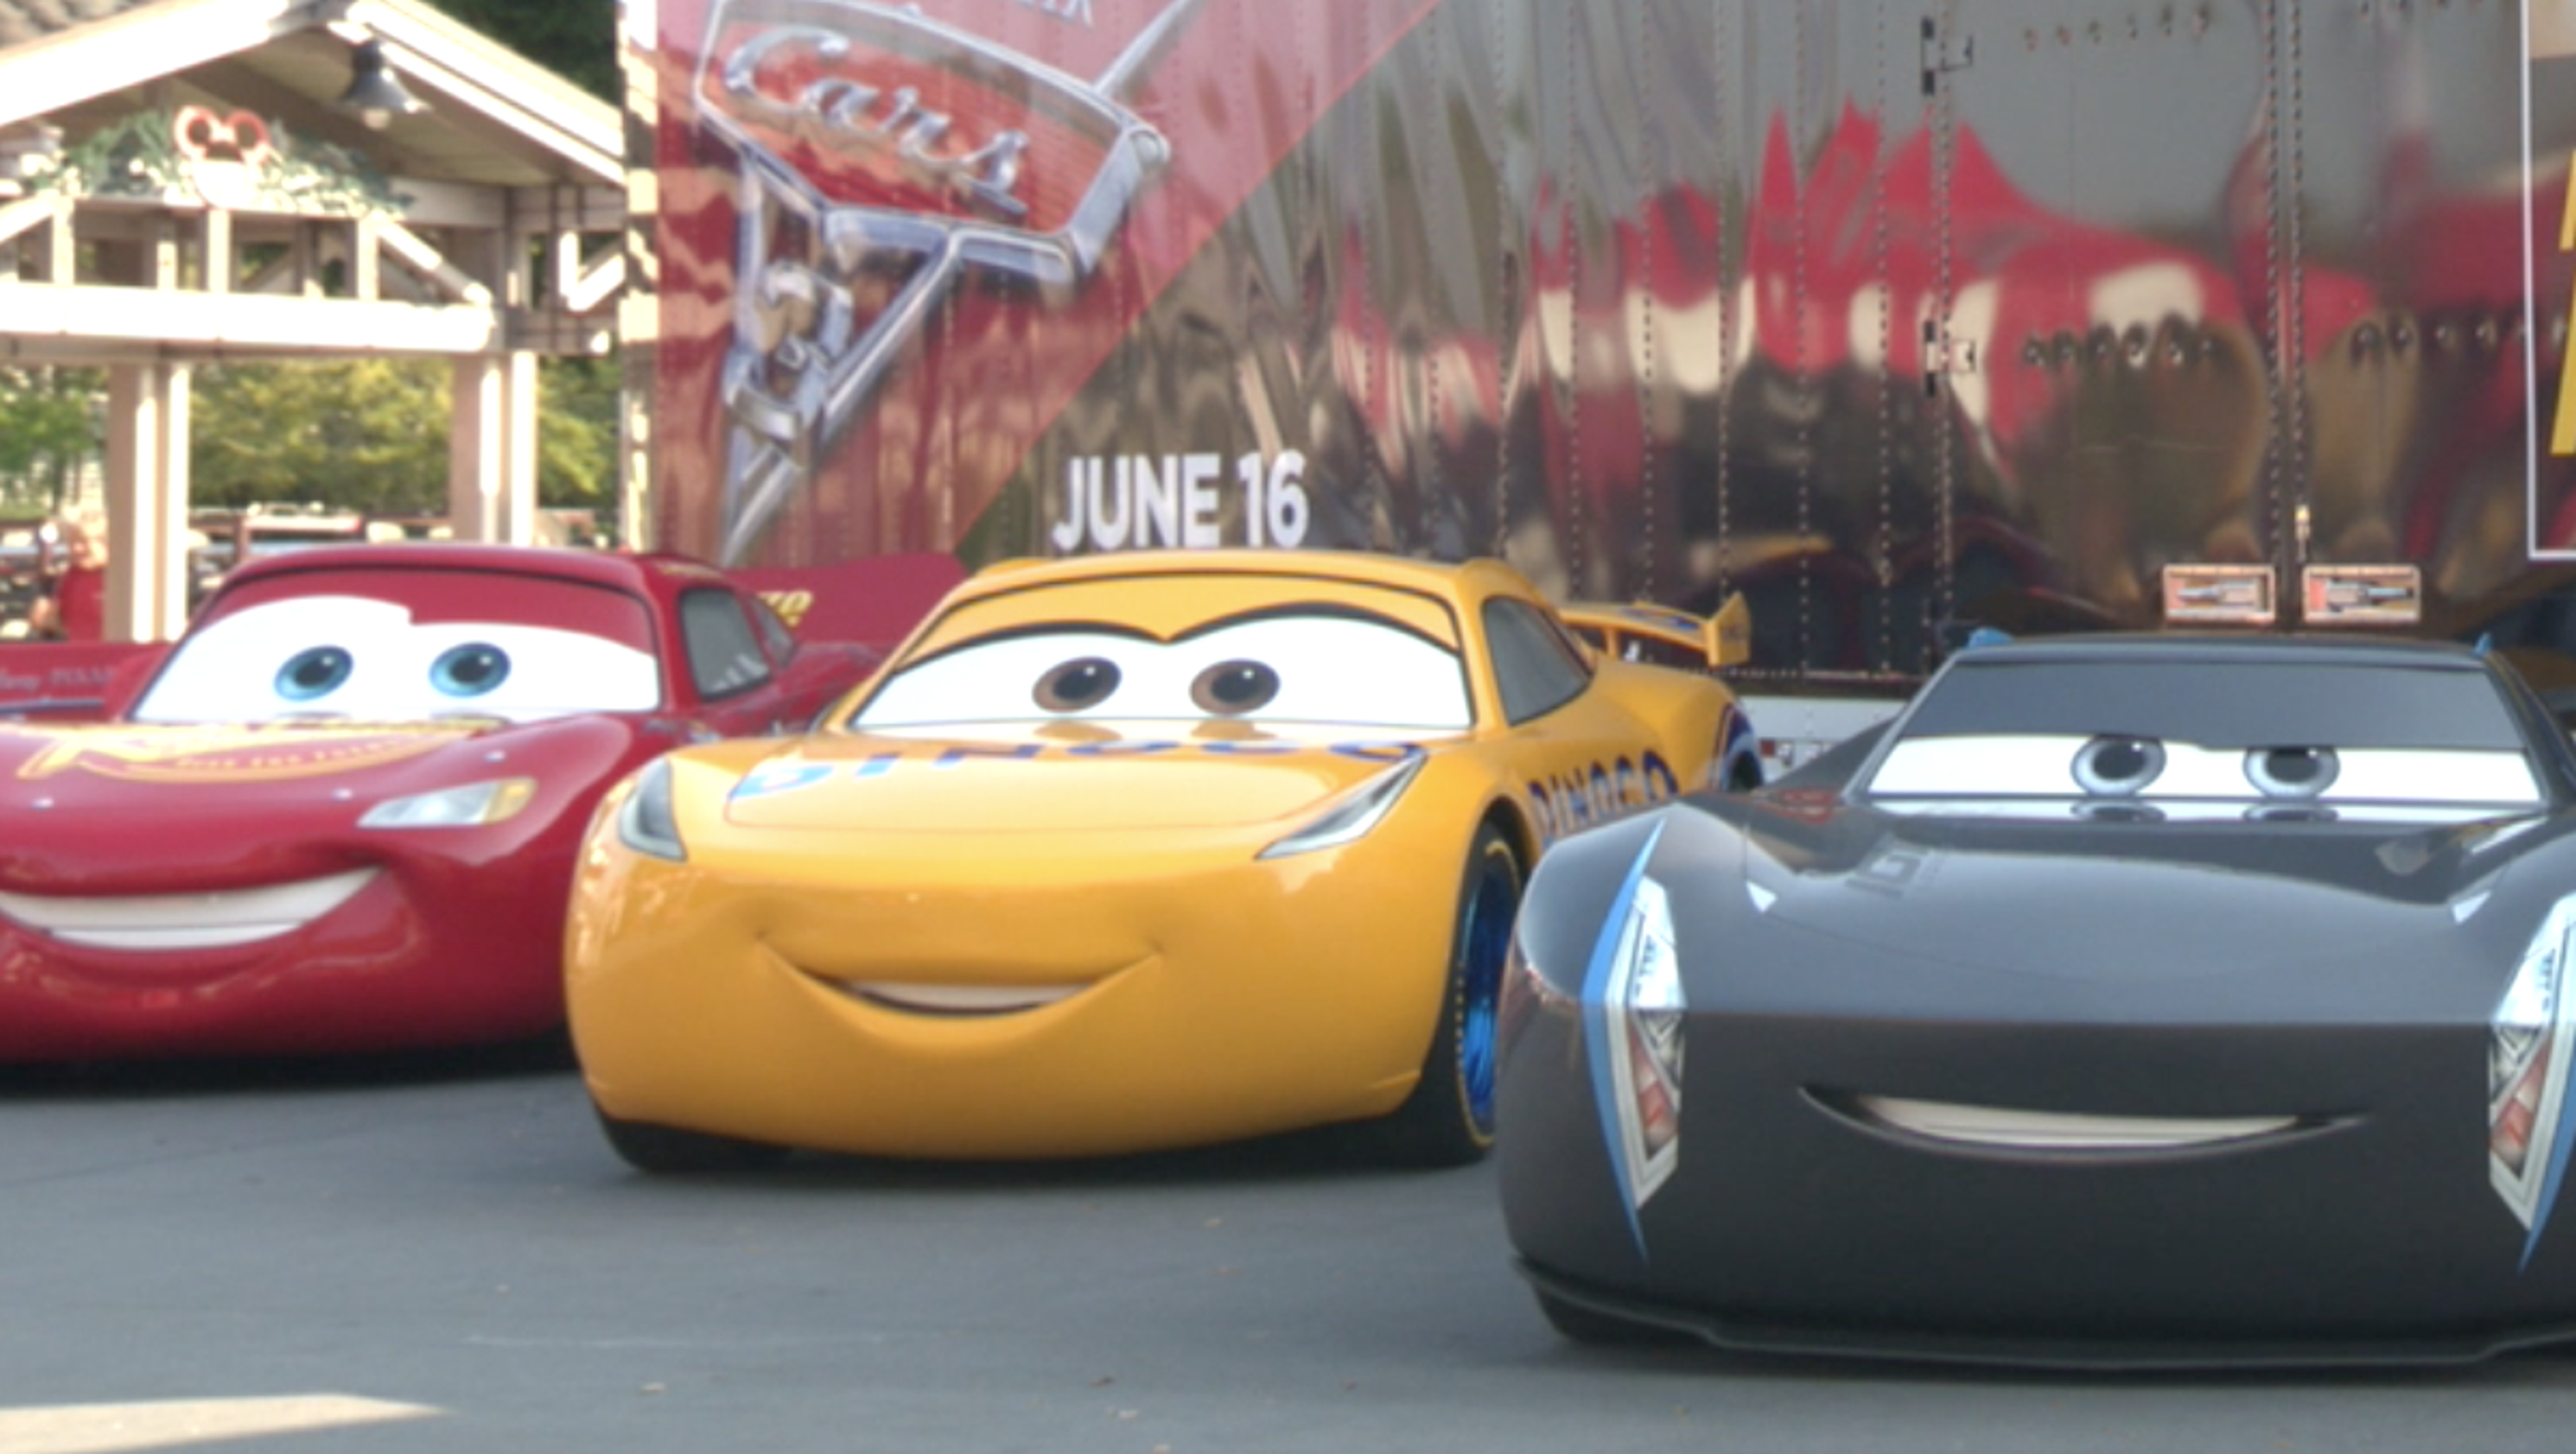 Free 39 cars 3 39 event is may 19 20 at charlotte motor speedway for Speedway motors used cars